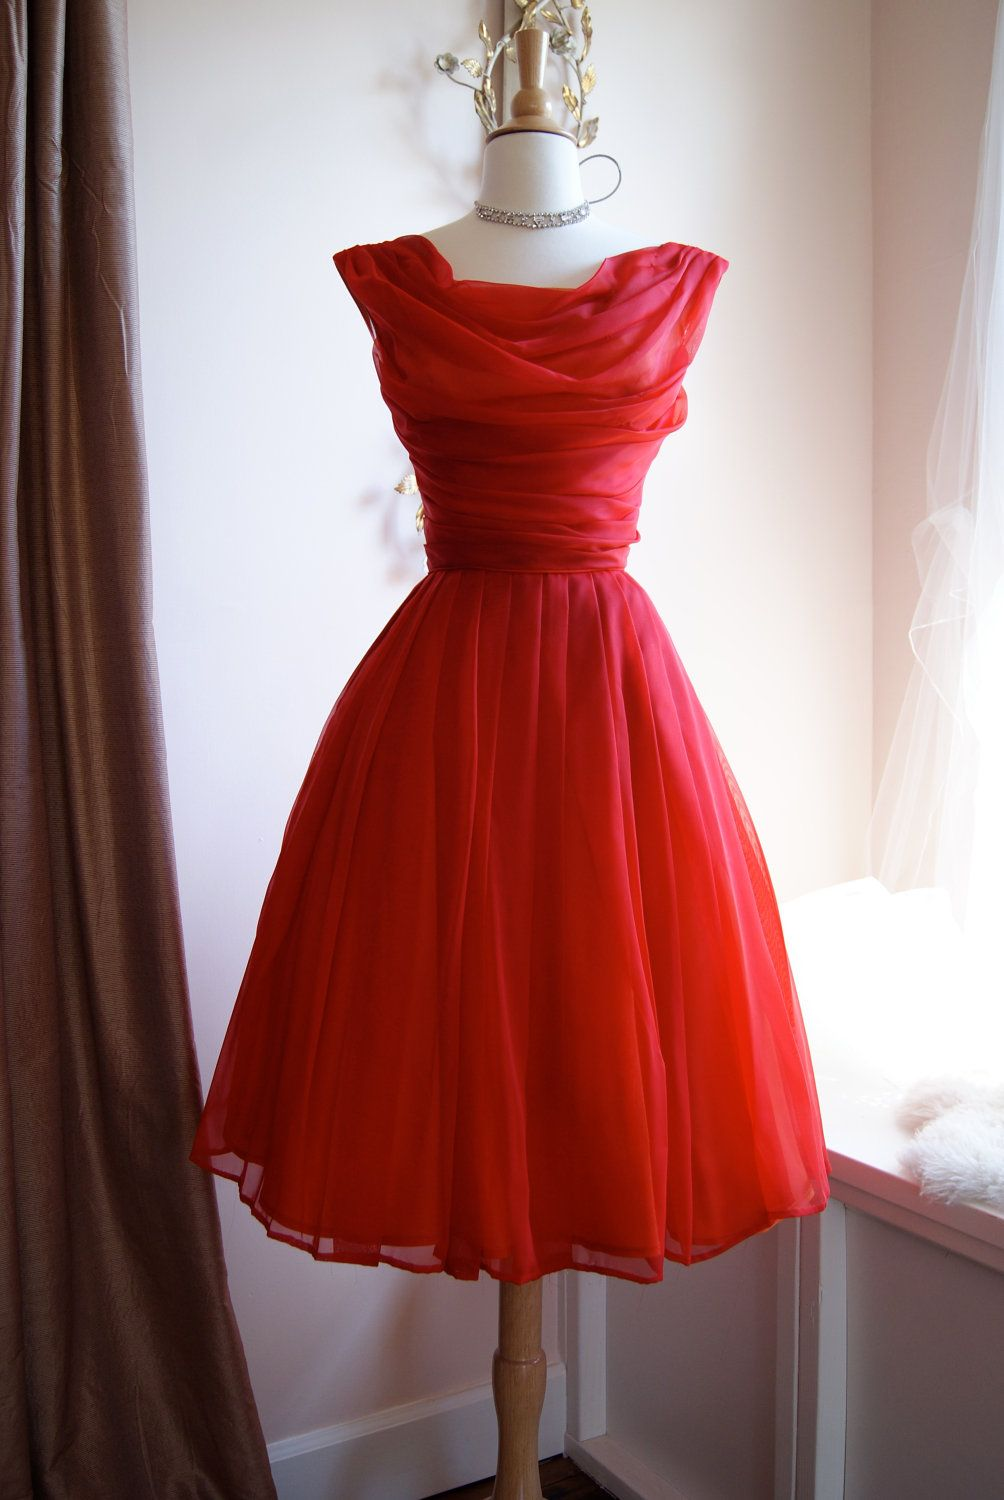 Vintage 1960s Siren Red Chiffon Cocktail Party Dress. THIS | Get in ...